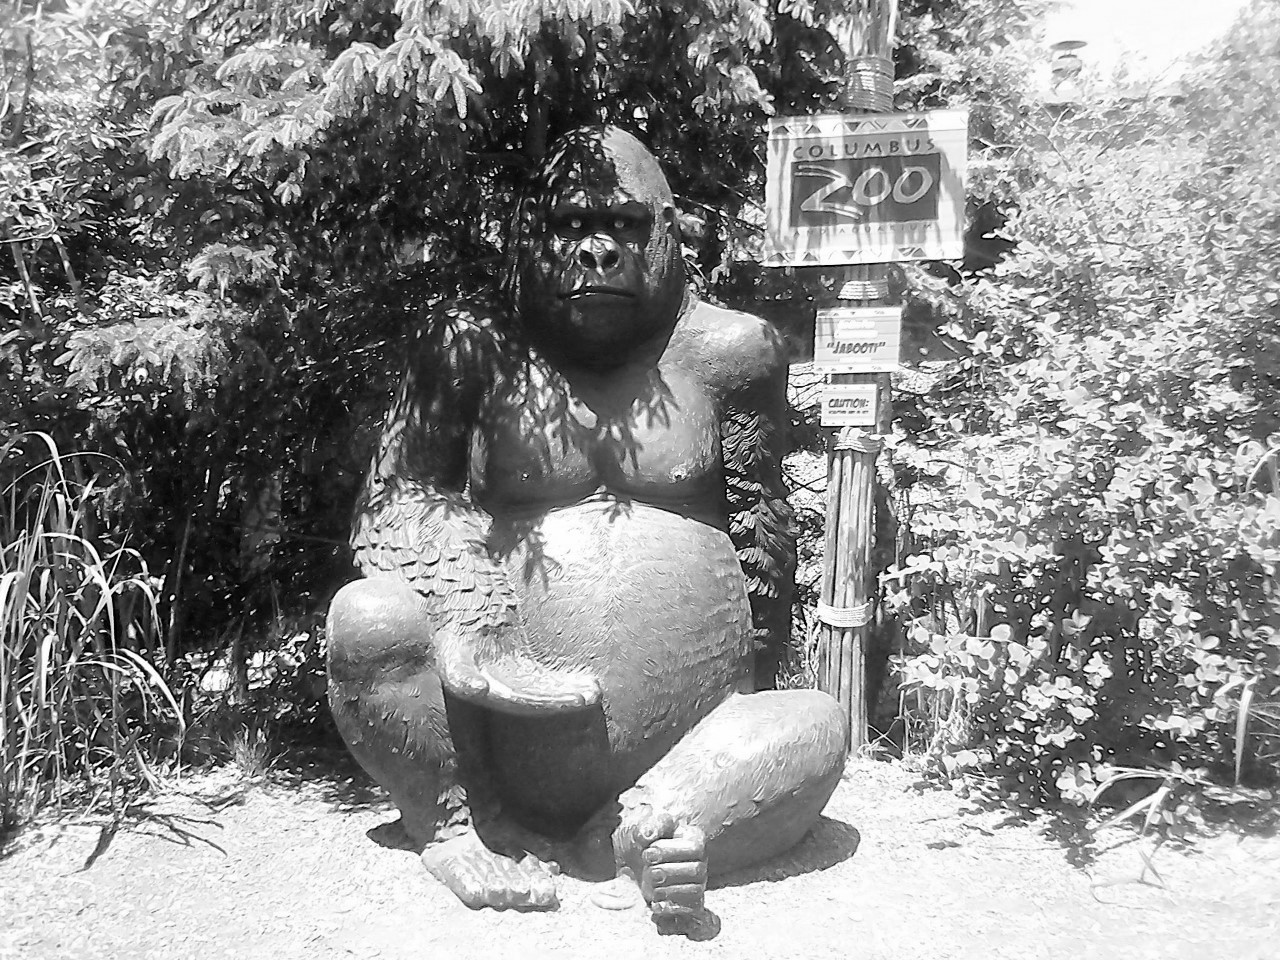 Gorilla Sculpture at Columbus Zoo 5-31-2014 12-59-19 PM